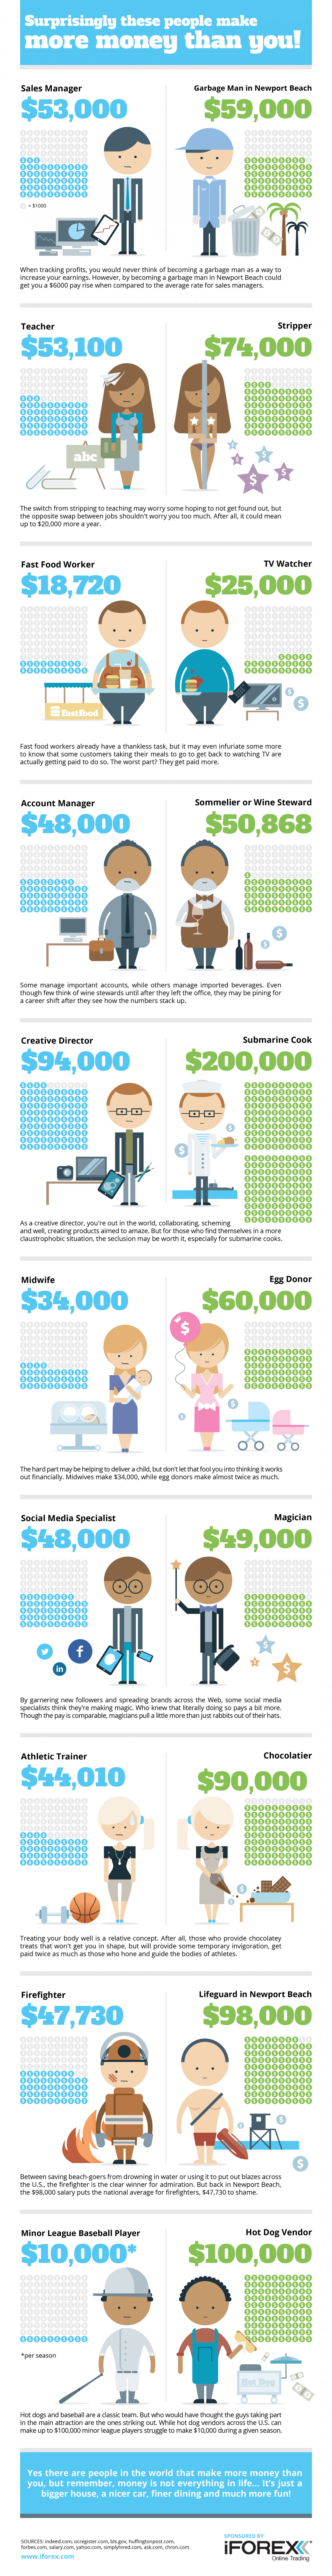 Surprisingly these people make more money than you! Infographic